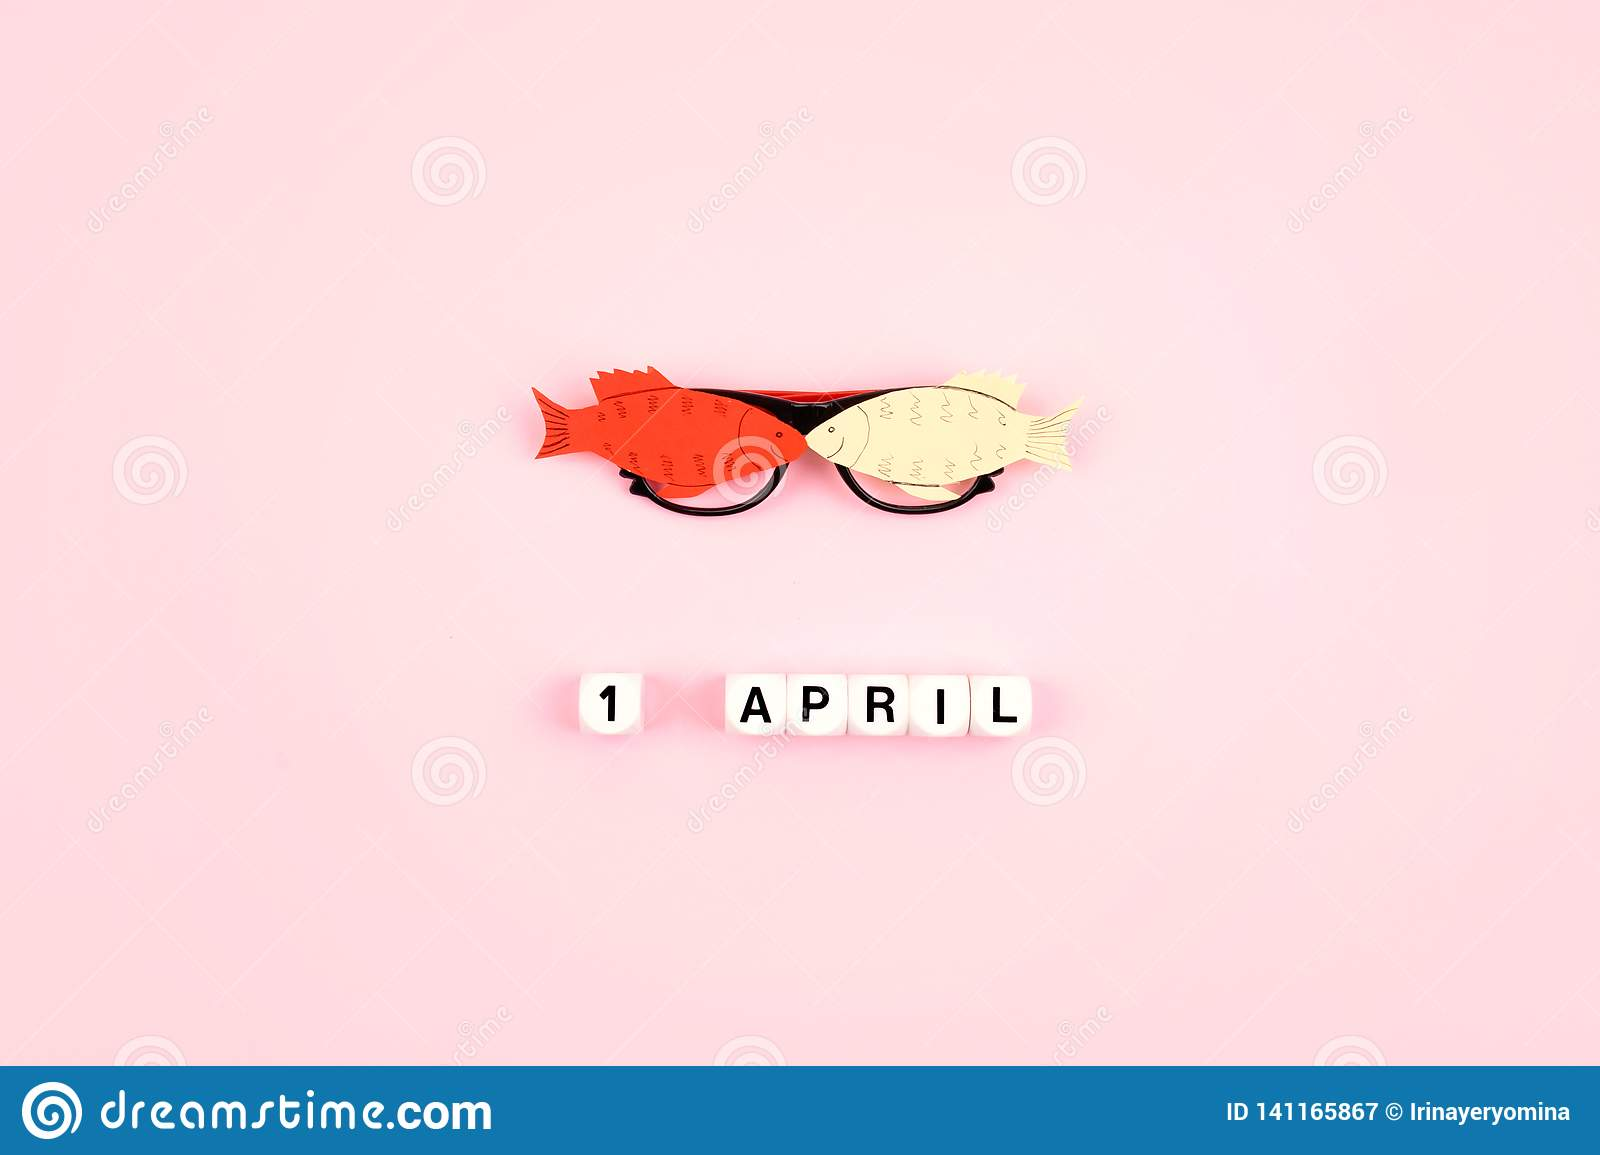 April Fools   Day celebration. Glasses with paper fish and text 1 April on pink background. All Fools   Day, humor, prank, joke